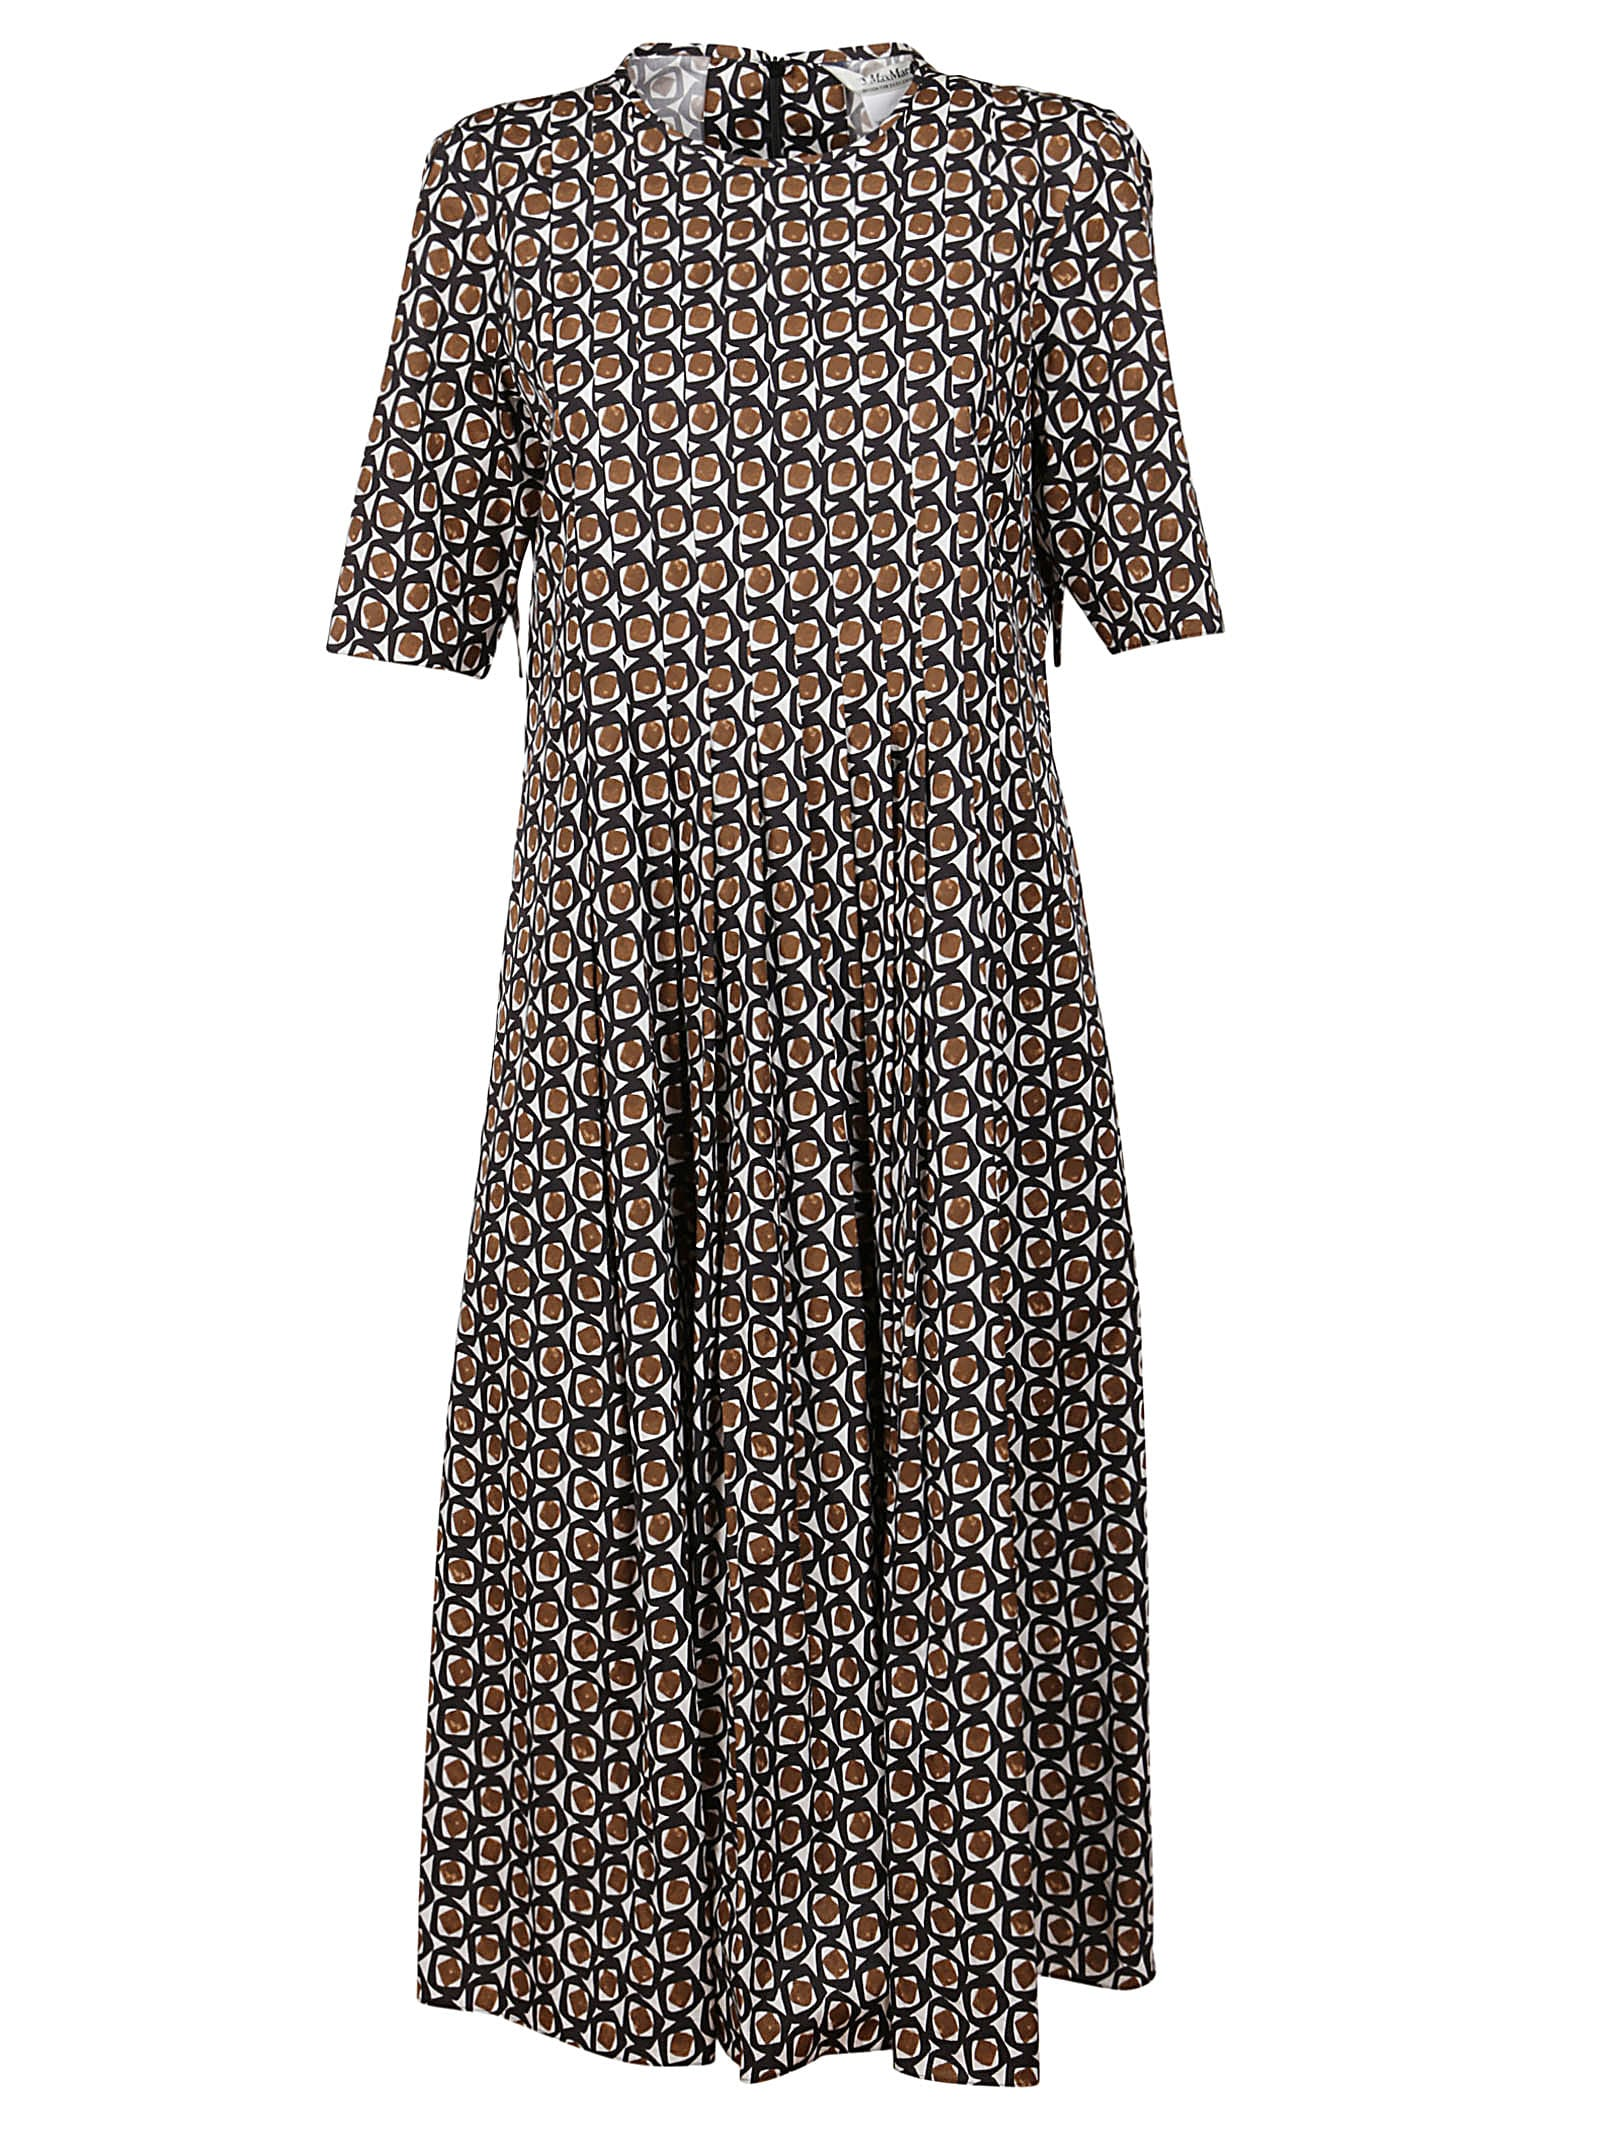 Buy S Max Mara Multicolor Cotton Dress online, shop S Max Mara with free shipping